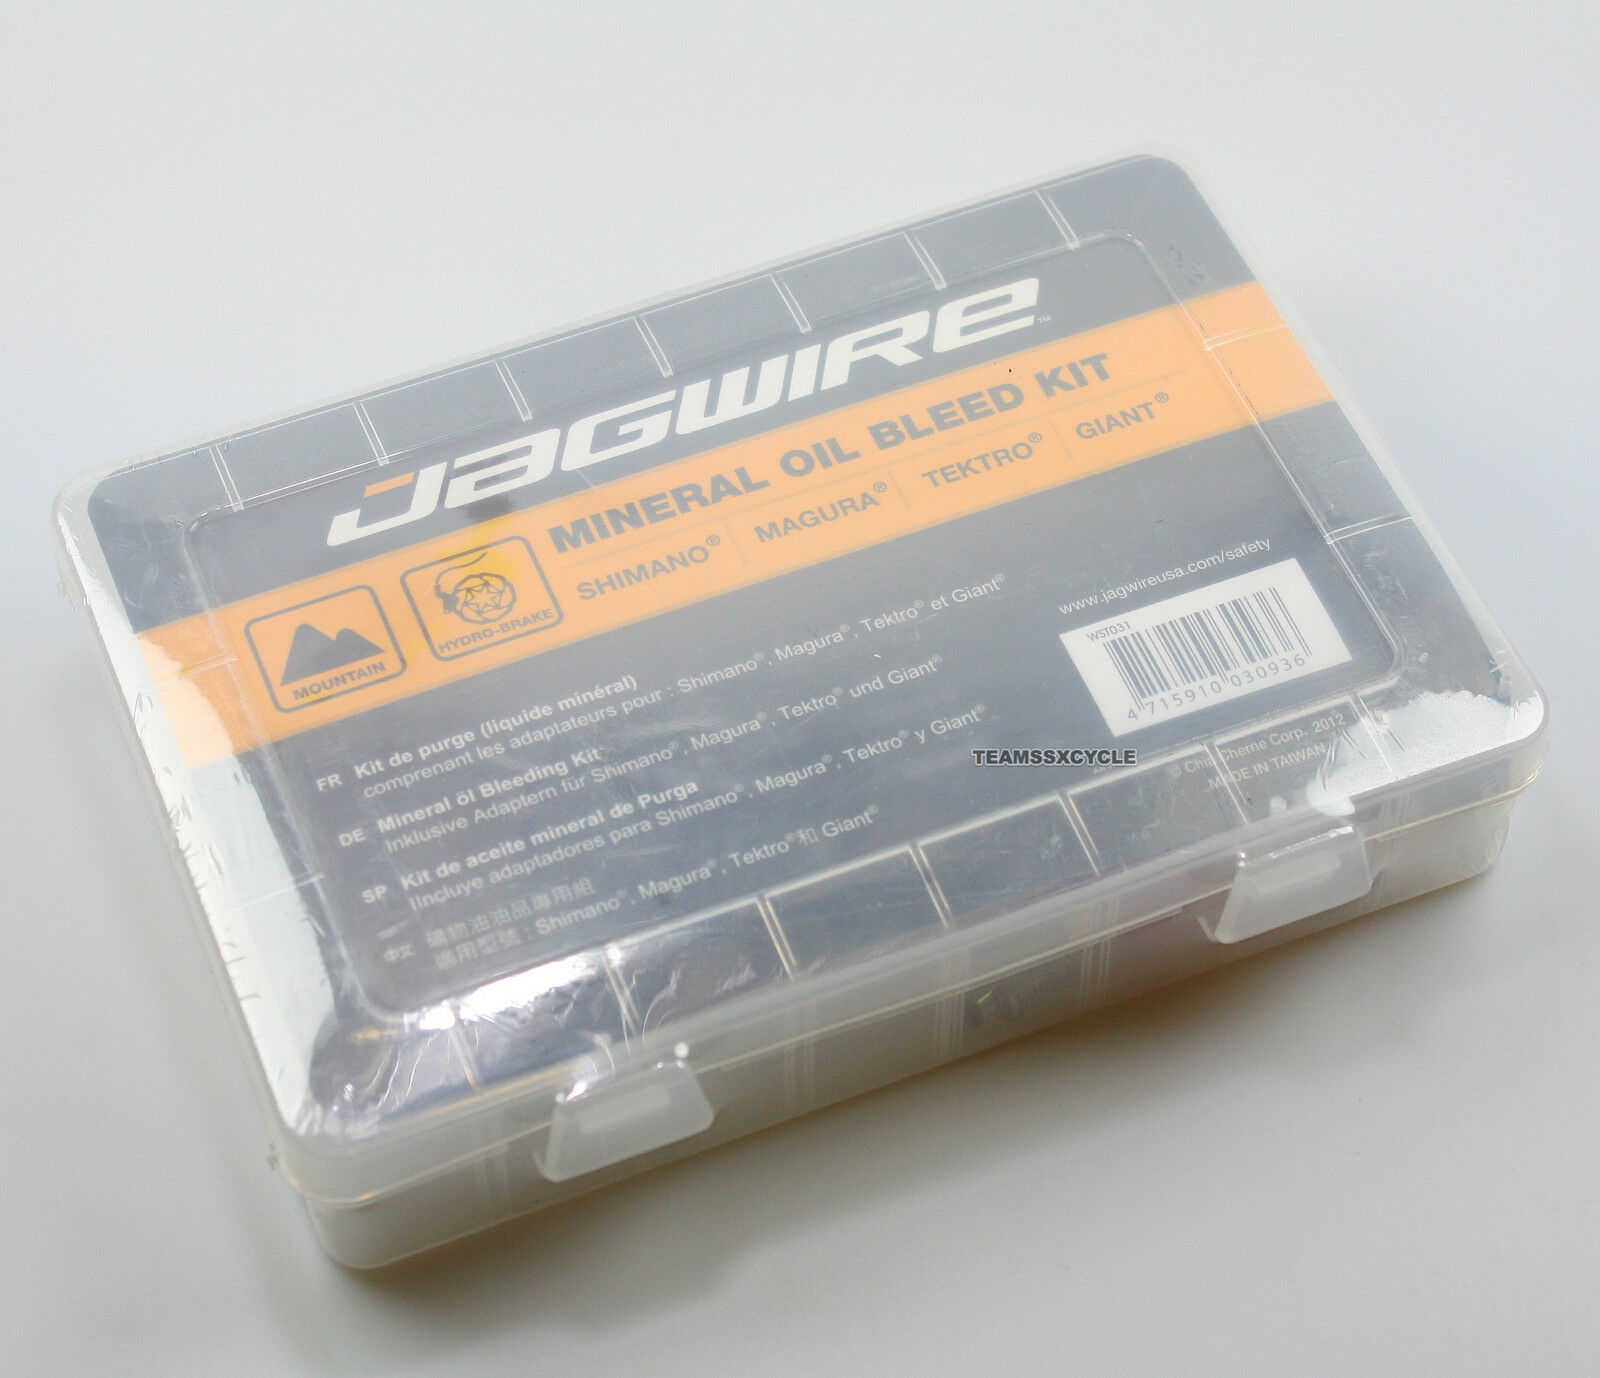 TEAMSSXNew Jagwire Mineral oil bleed kit for Shimano Magura Tektro, WST031